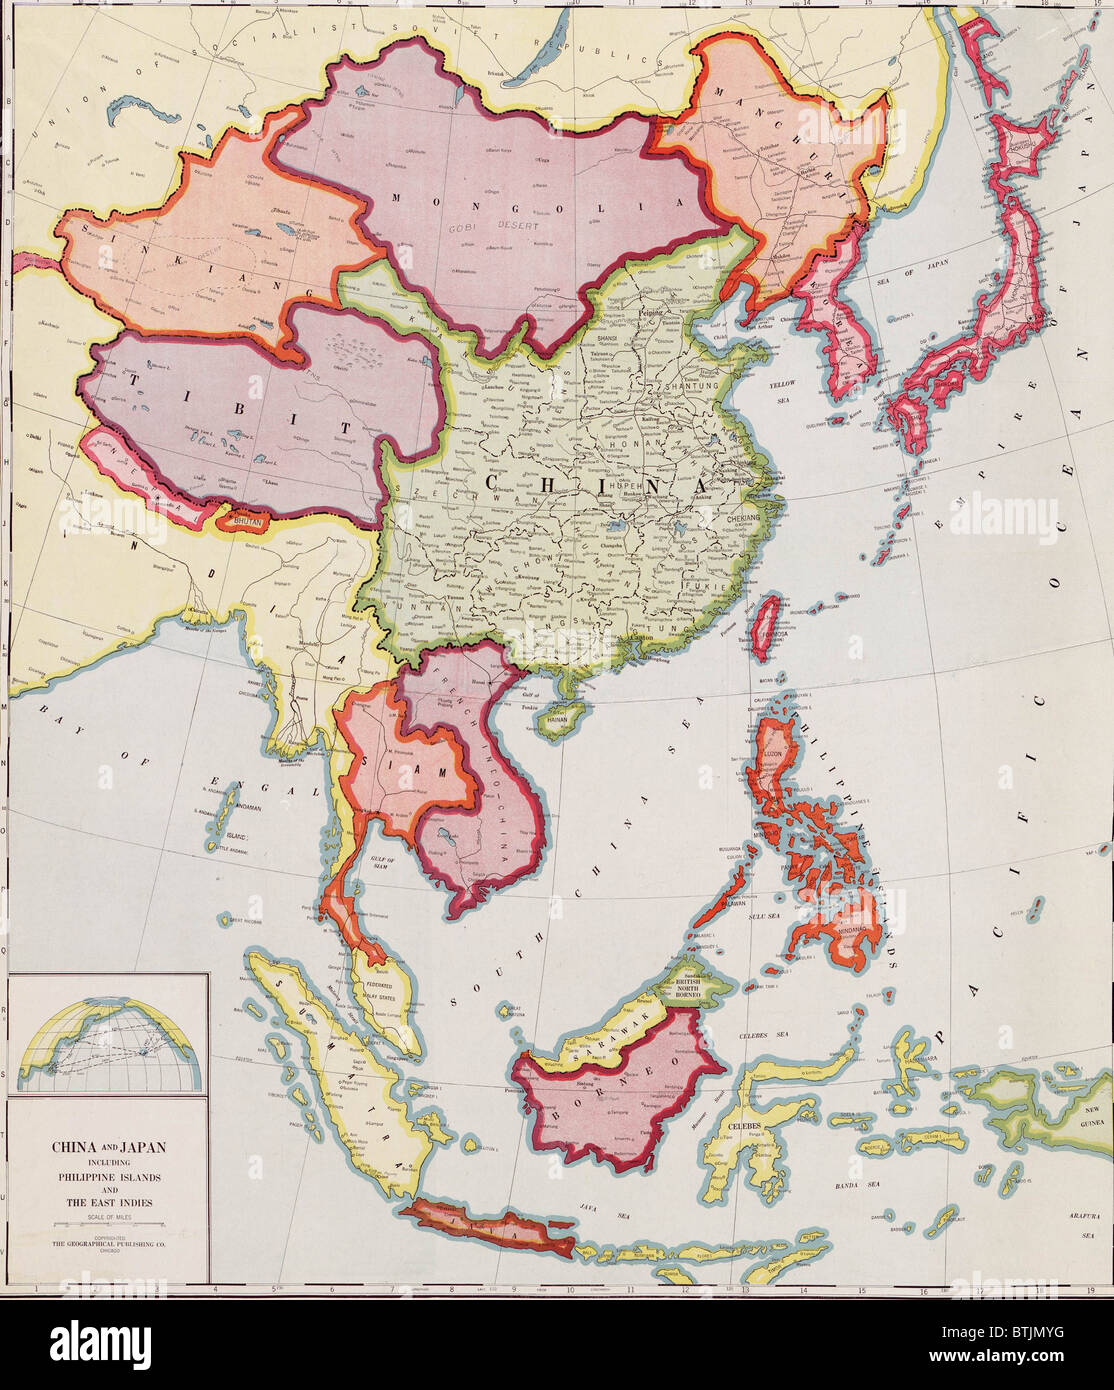 1932 map of east asia showing nations that would become targets of 1932 map of east asia showing nations that would become targets of japanese expansion and invasion in the sino japanese war and world war ii gumiabroncs Images